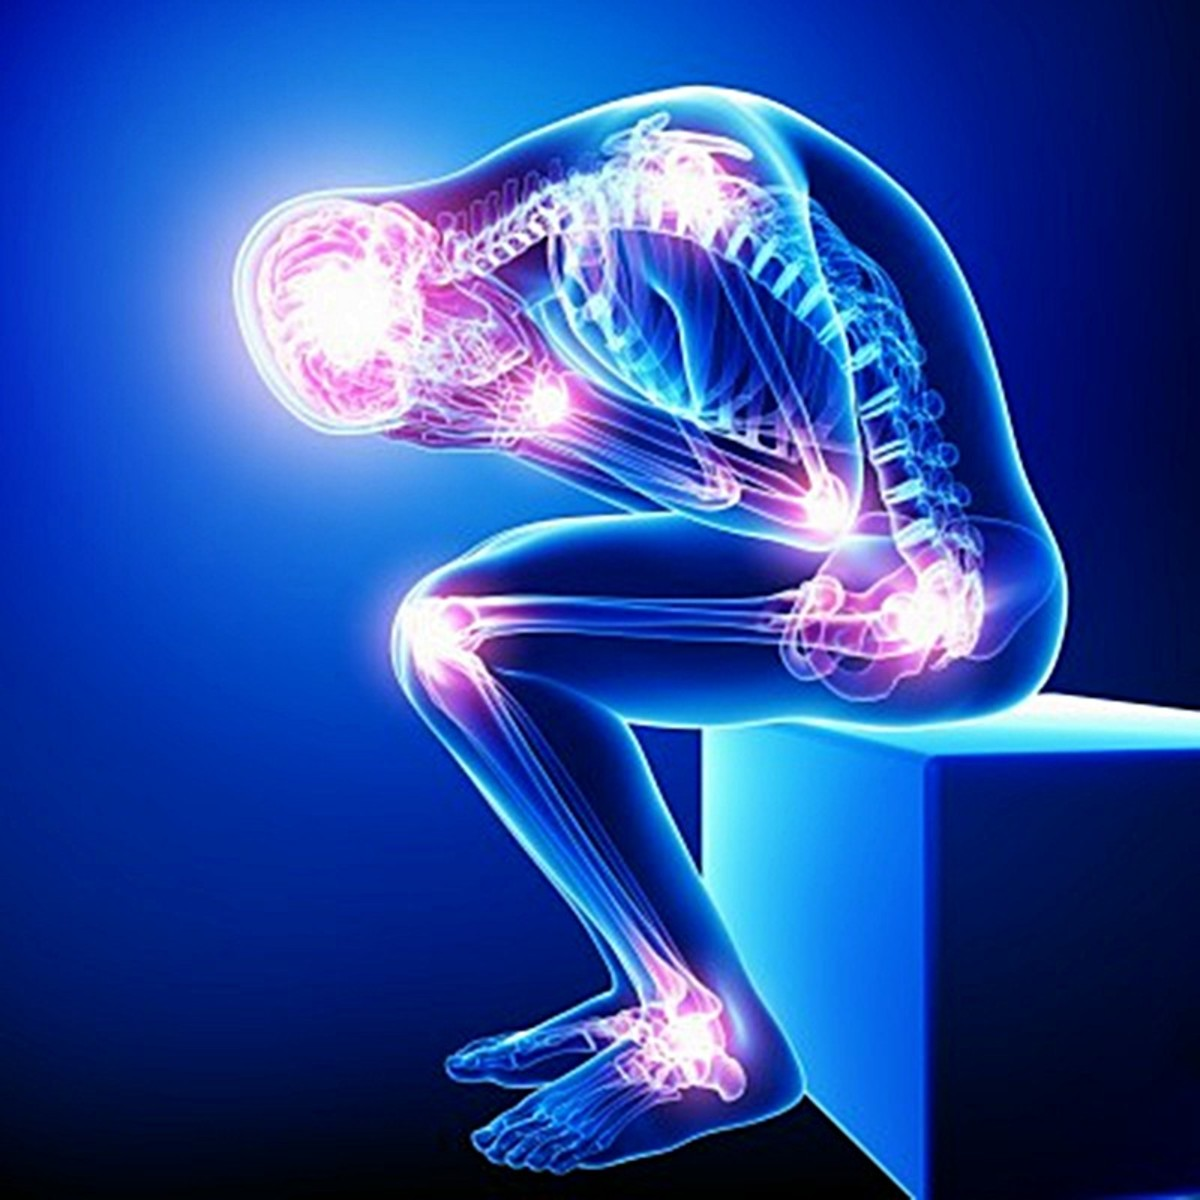 The pain of Osteoarthritis can strike in any joint. Find out about the efficacy of liquid supplements to relieve pain and inflammation.